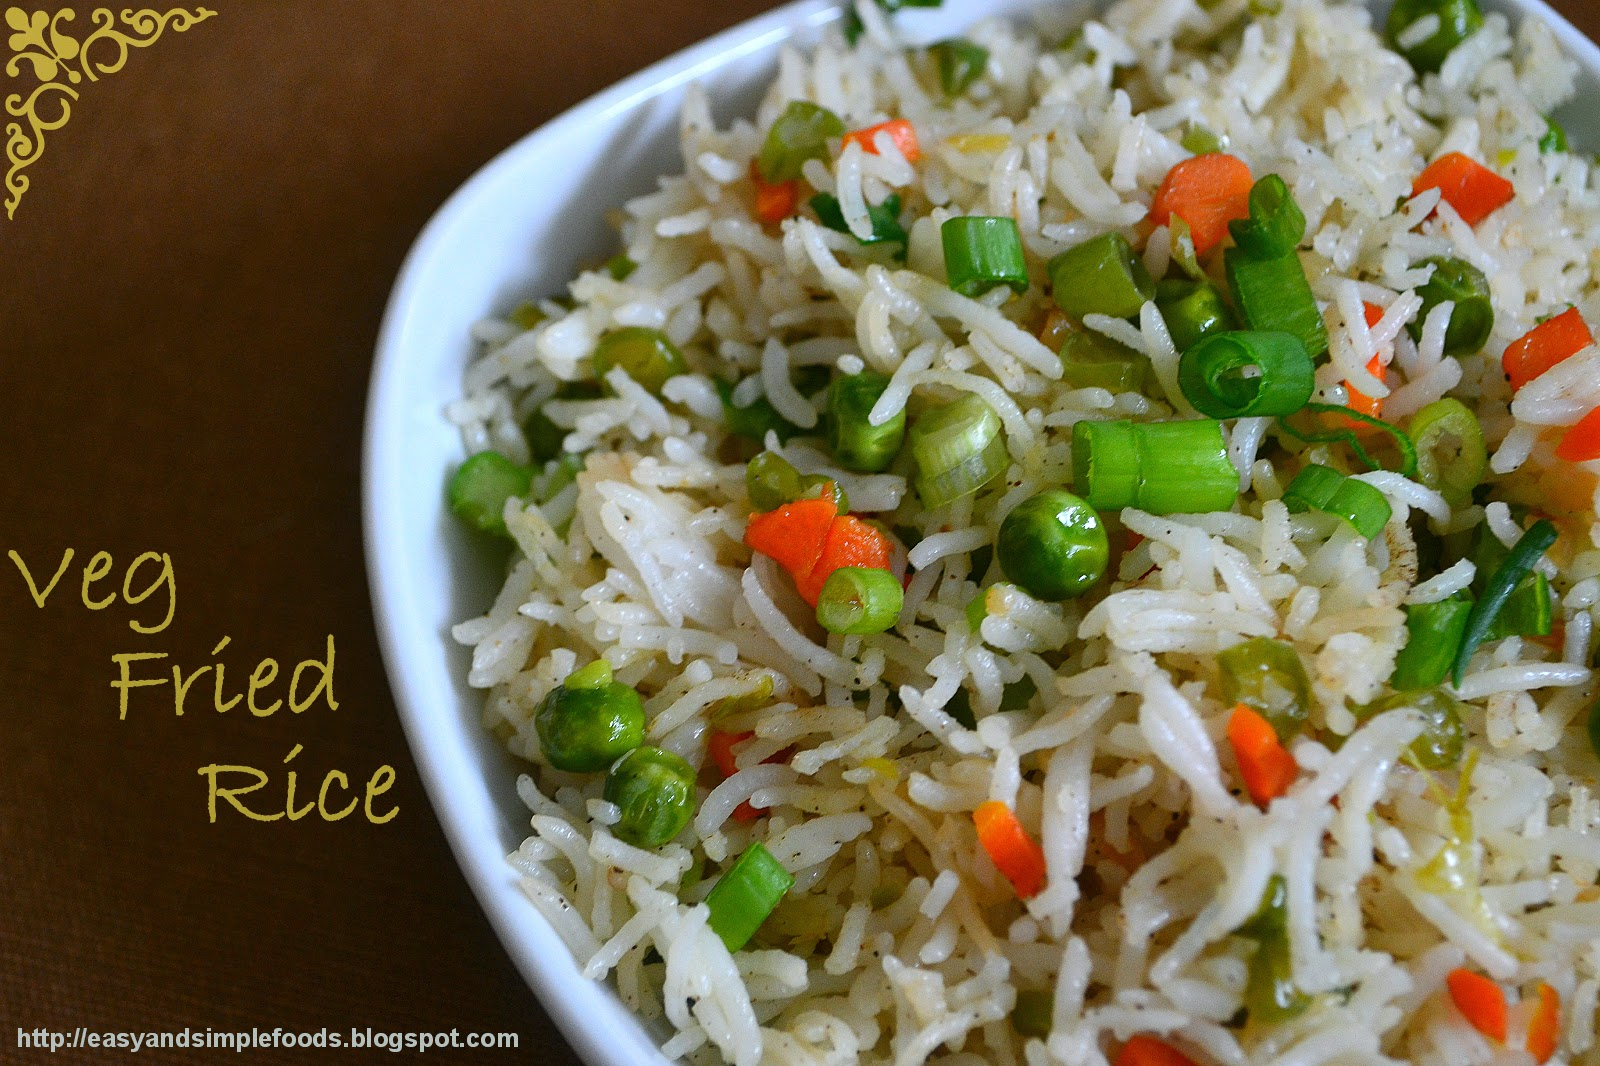 Easy and simple foods veg fried rice here is the simple recipe i follow it is less spicy you can add more pepper or a tea spoon of green chili sauce or even chopped green chilies while ccuart Image collections